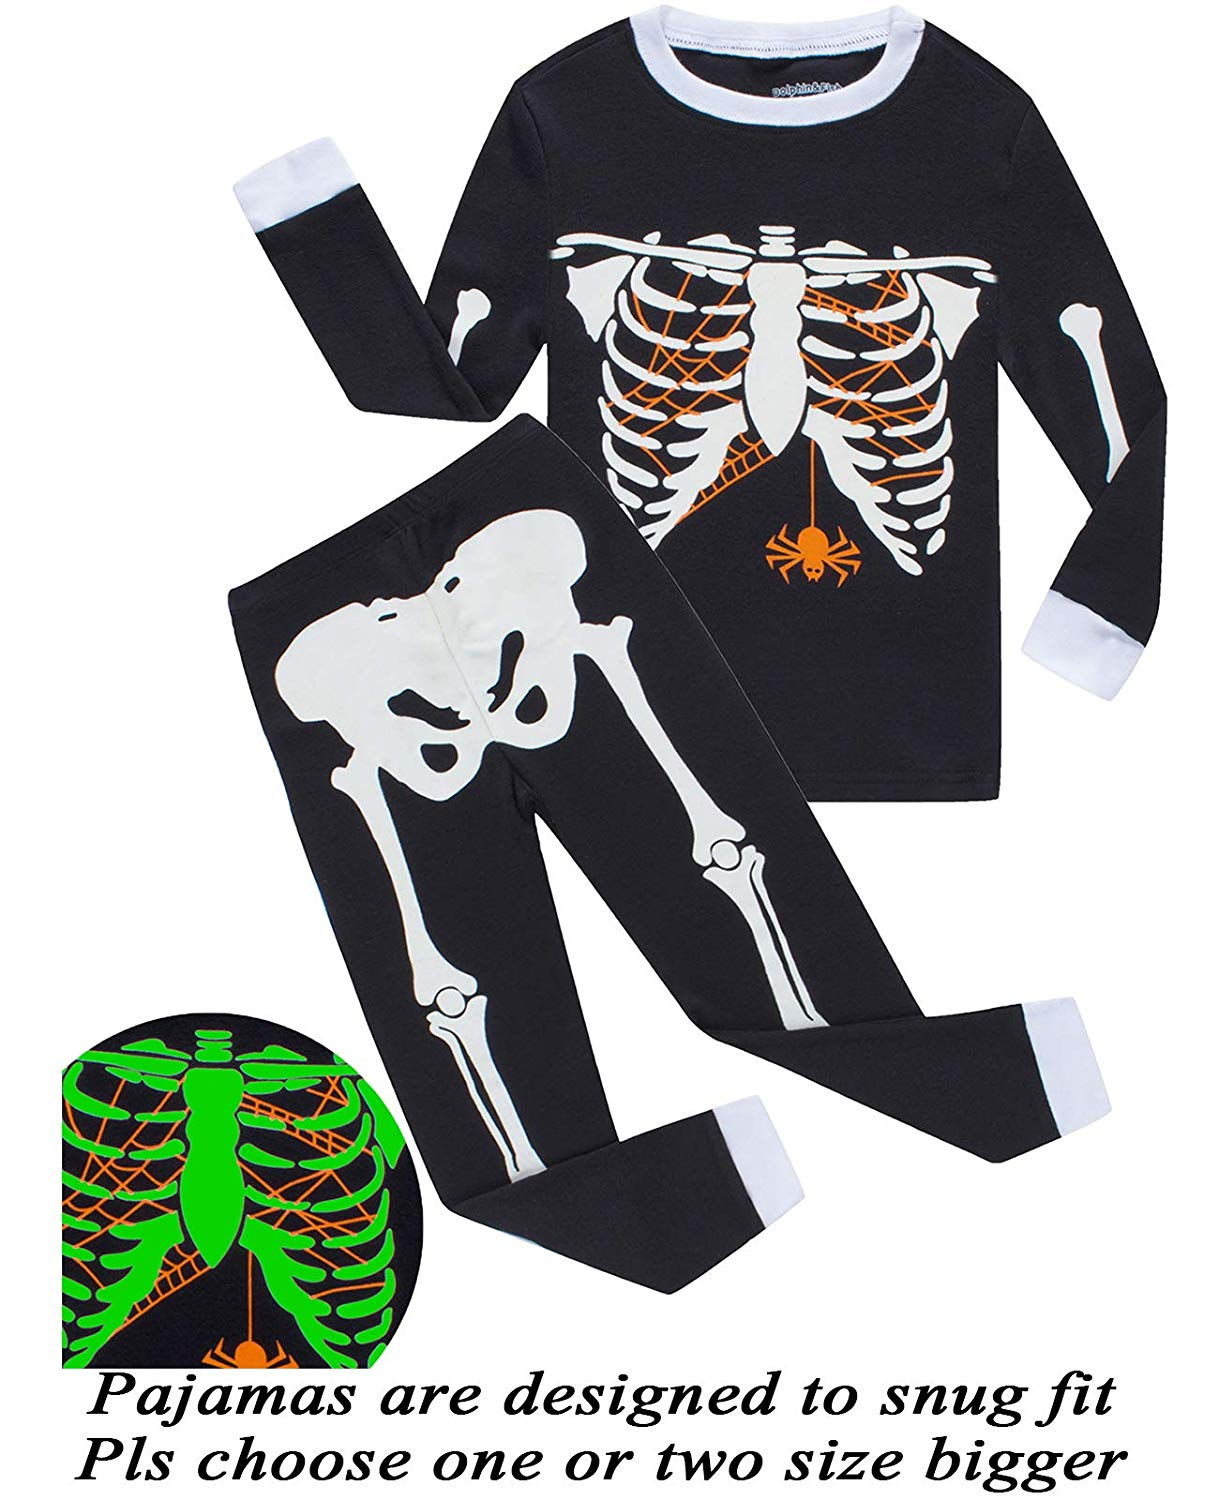 a49574d8b49 Get Quotations · Dolphin Fish Boys Pajamas Skeleton Glow in The Dark  Halloween Girls Pajamas Toddler Pjs Kids Sleepwear